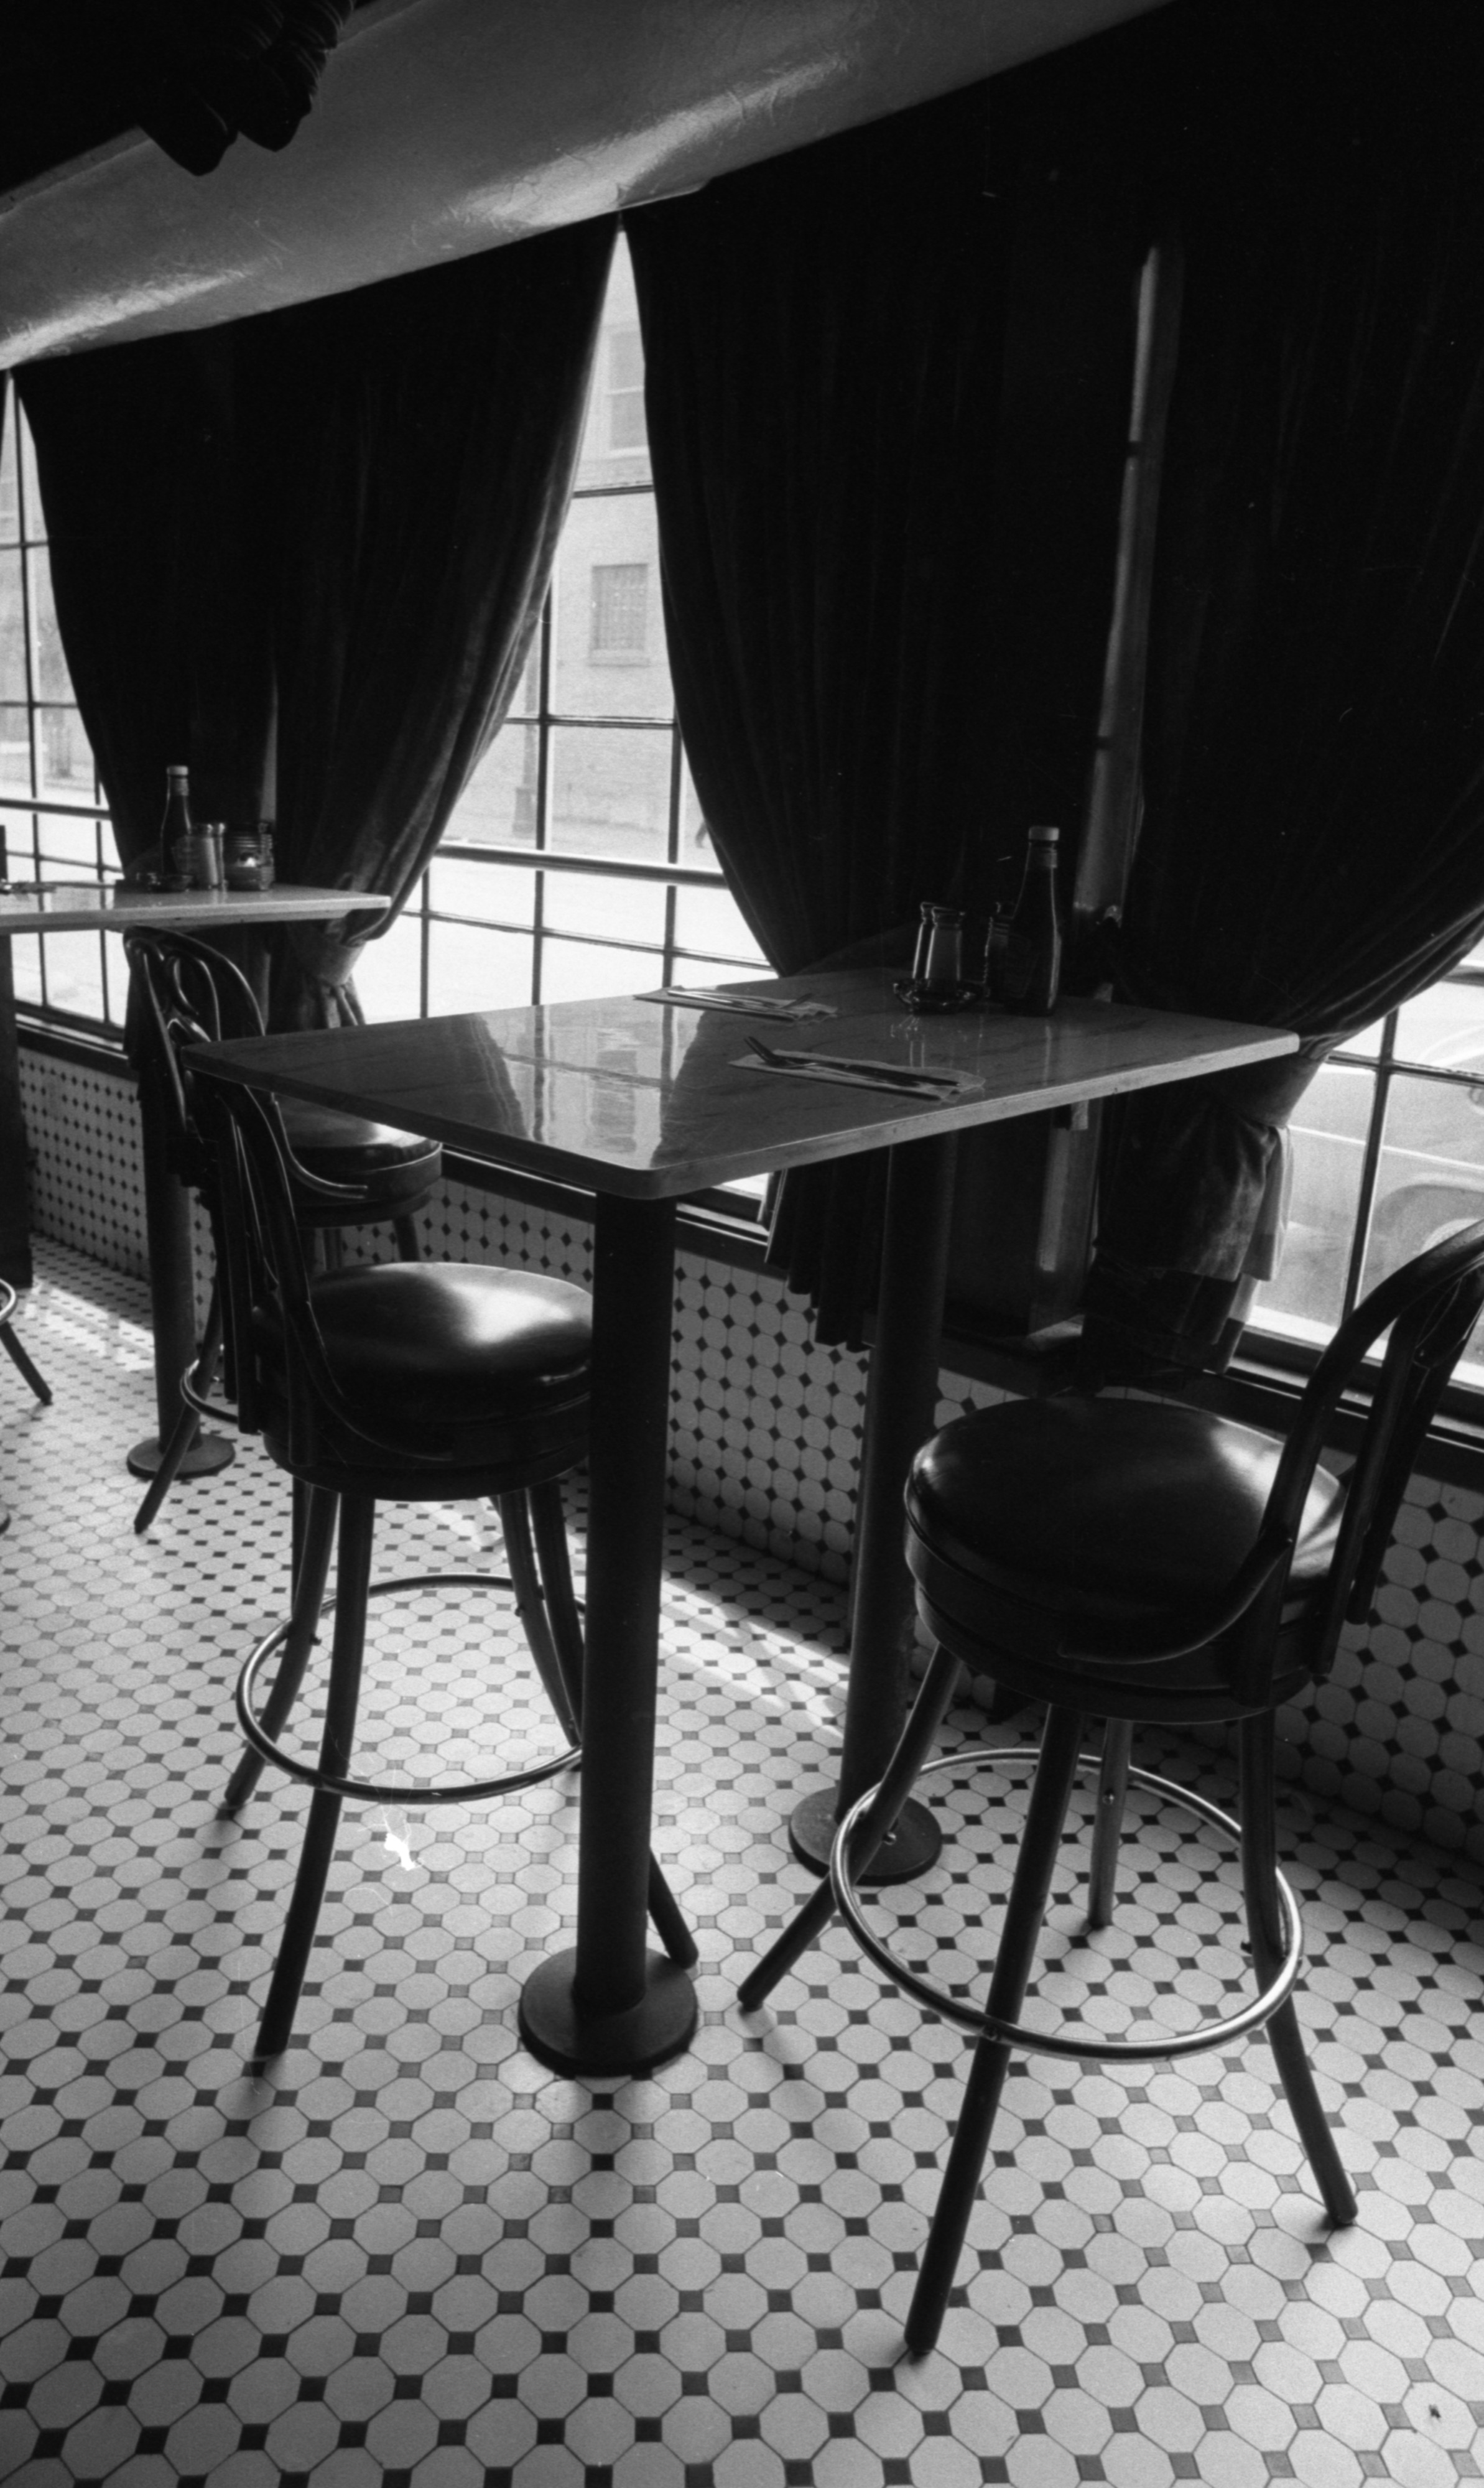 Tables At The Cracked Crab Restaurant Located At 112 W Washington St, May 1982 image